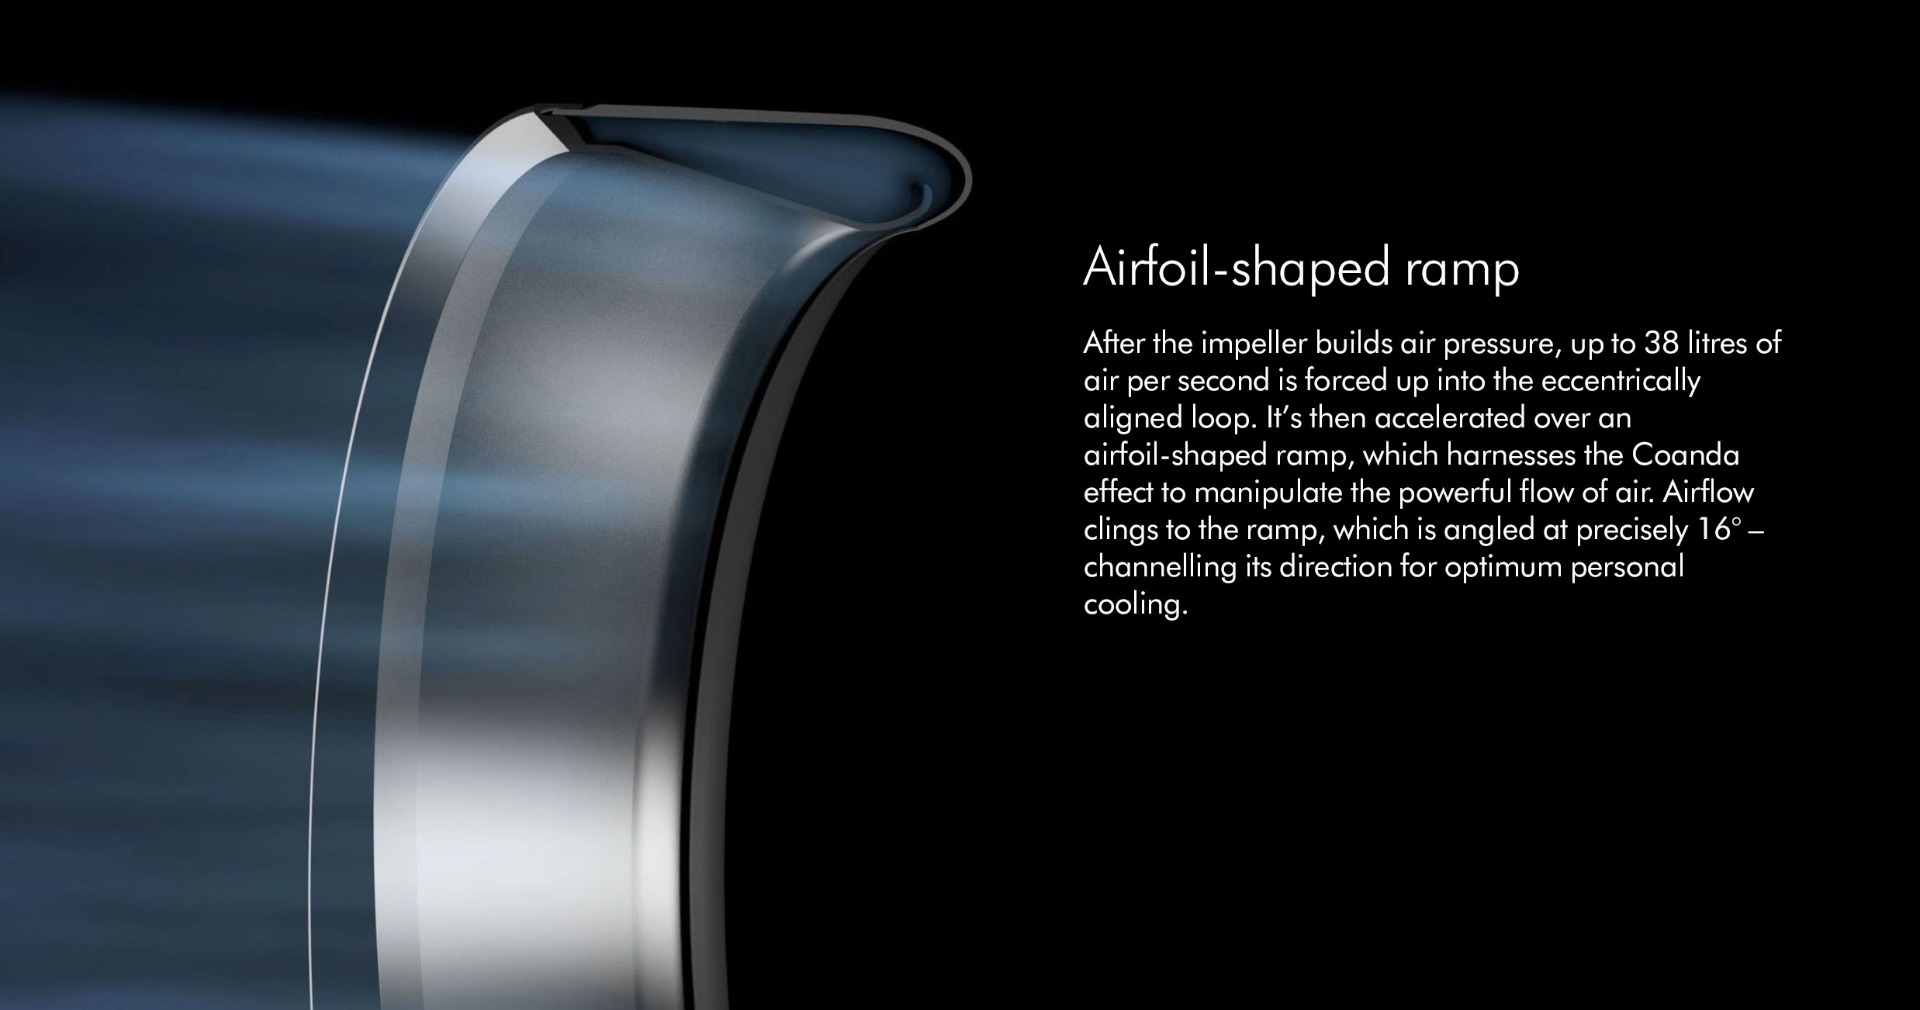 Airfoil-shaped ramp